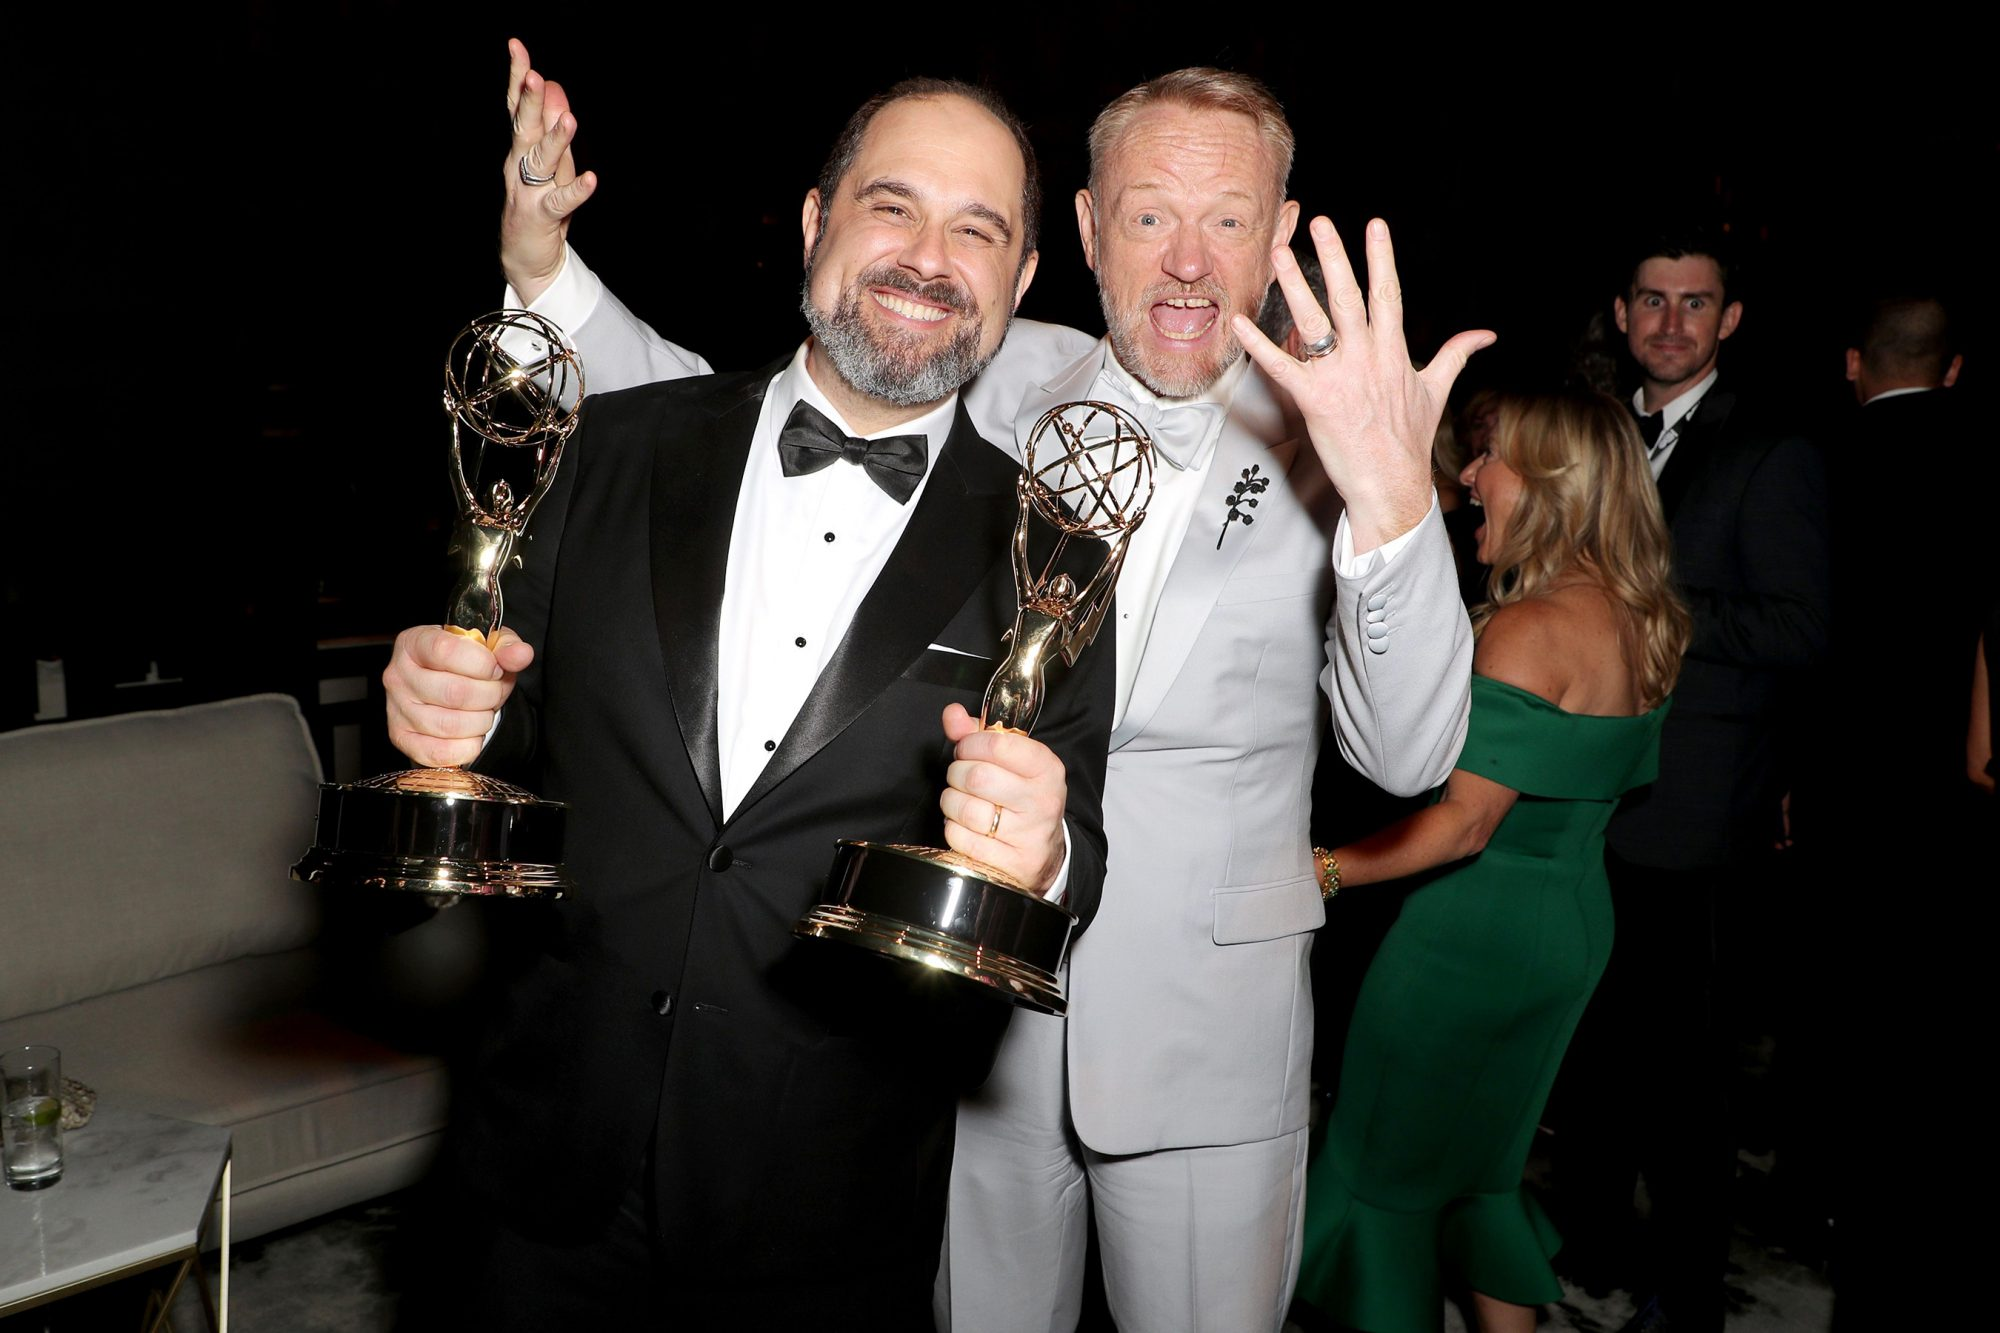 Craig Mazin and Jared Harris